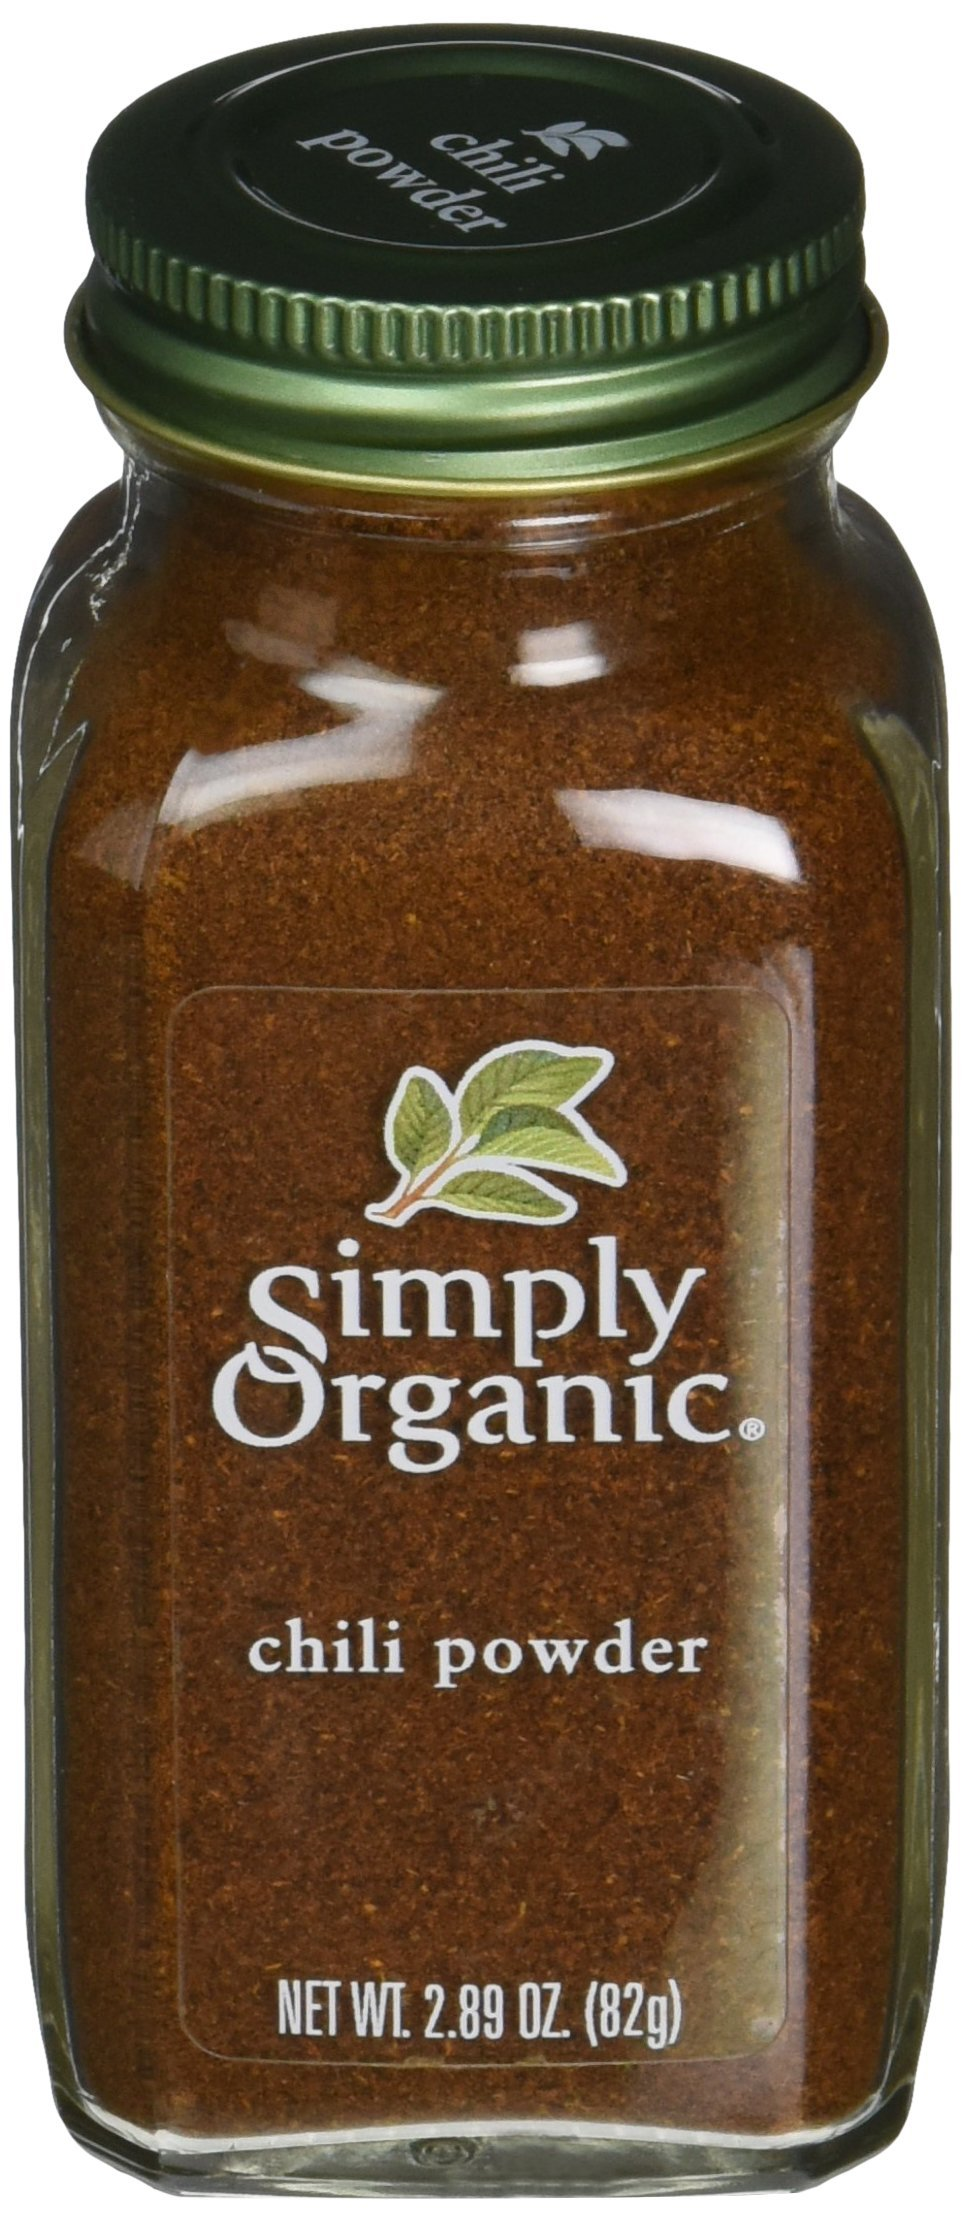 Simply Organic Chili Powder, 2.89 Ounce - 6 per case